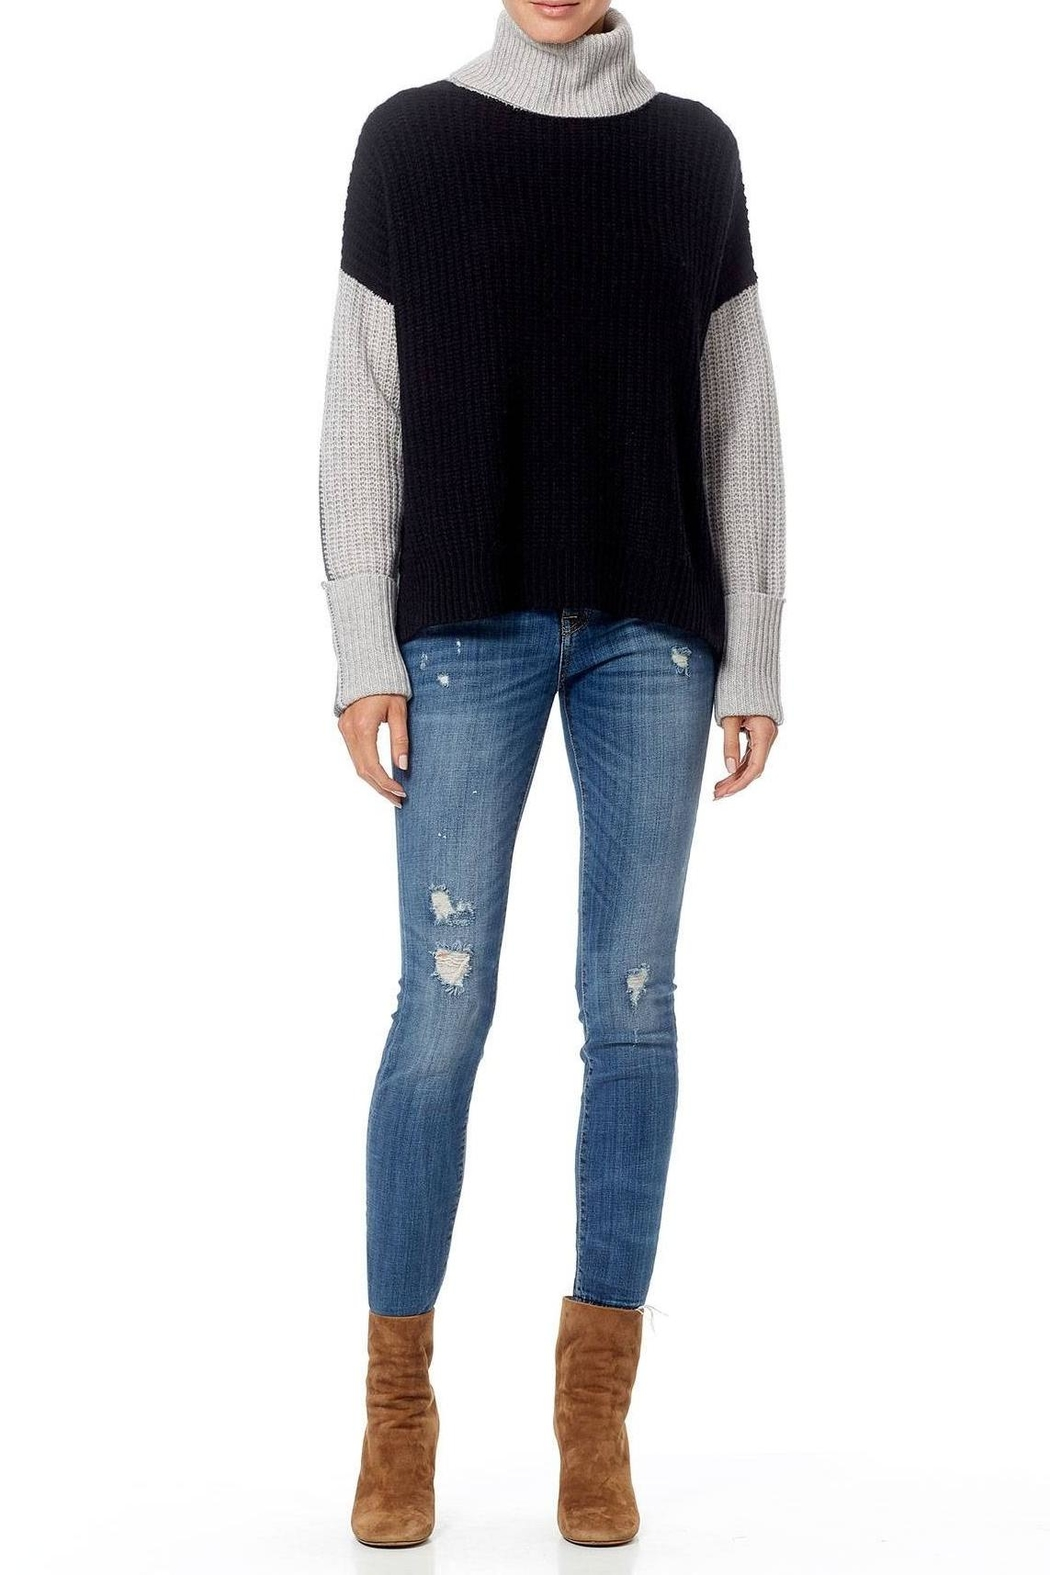 Skull Cashmere Dree Color Block Sweater - Back Cropped Image